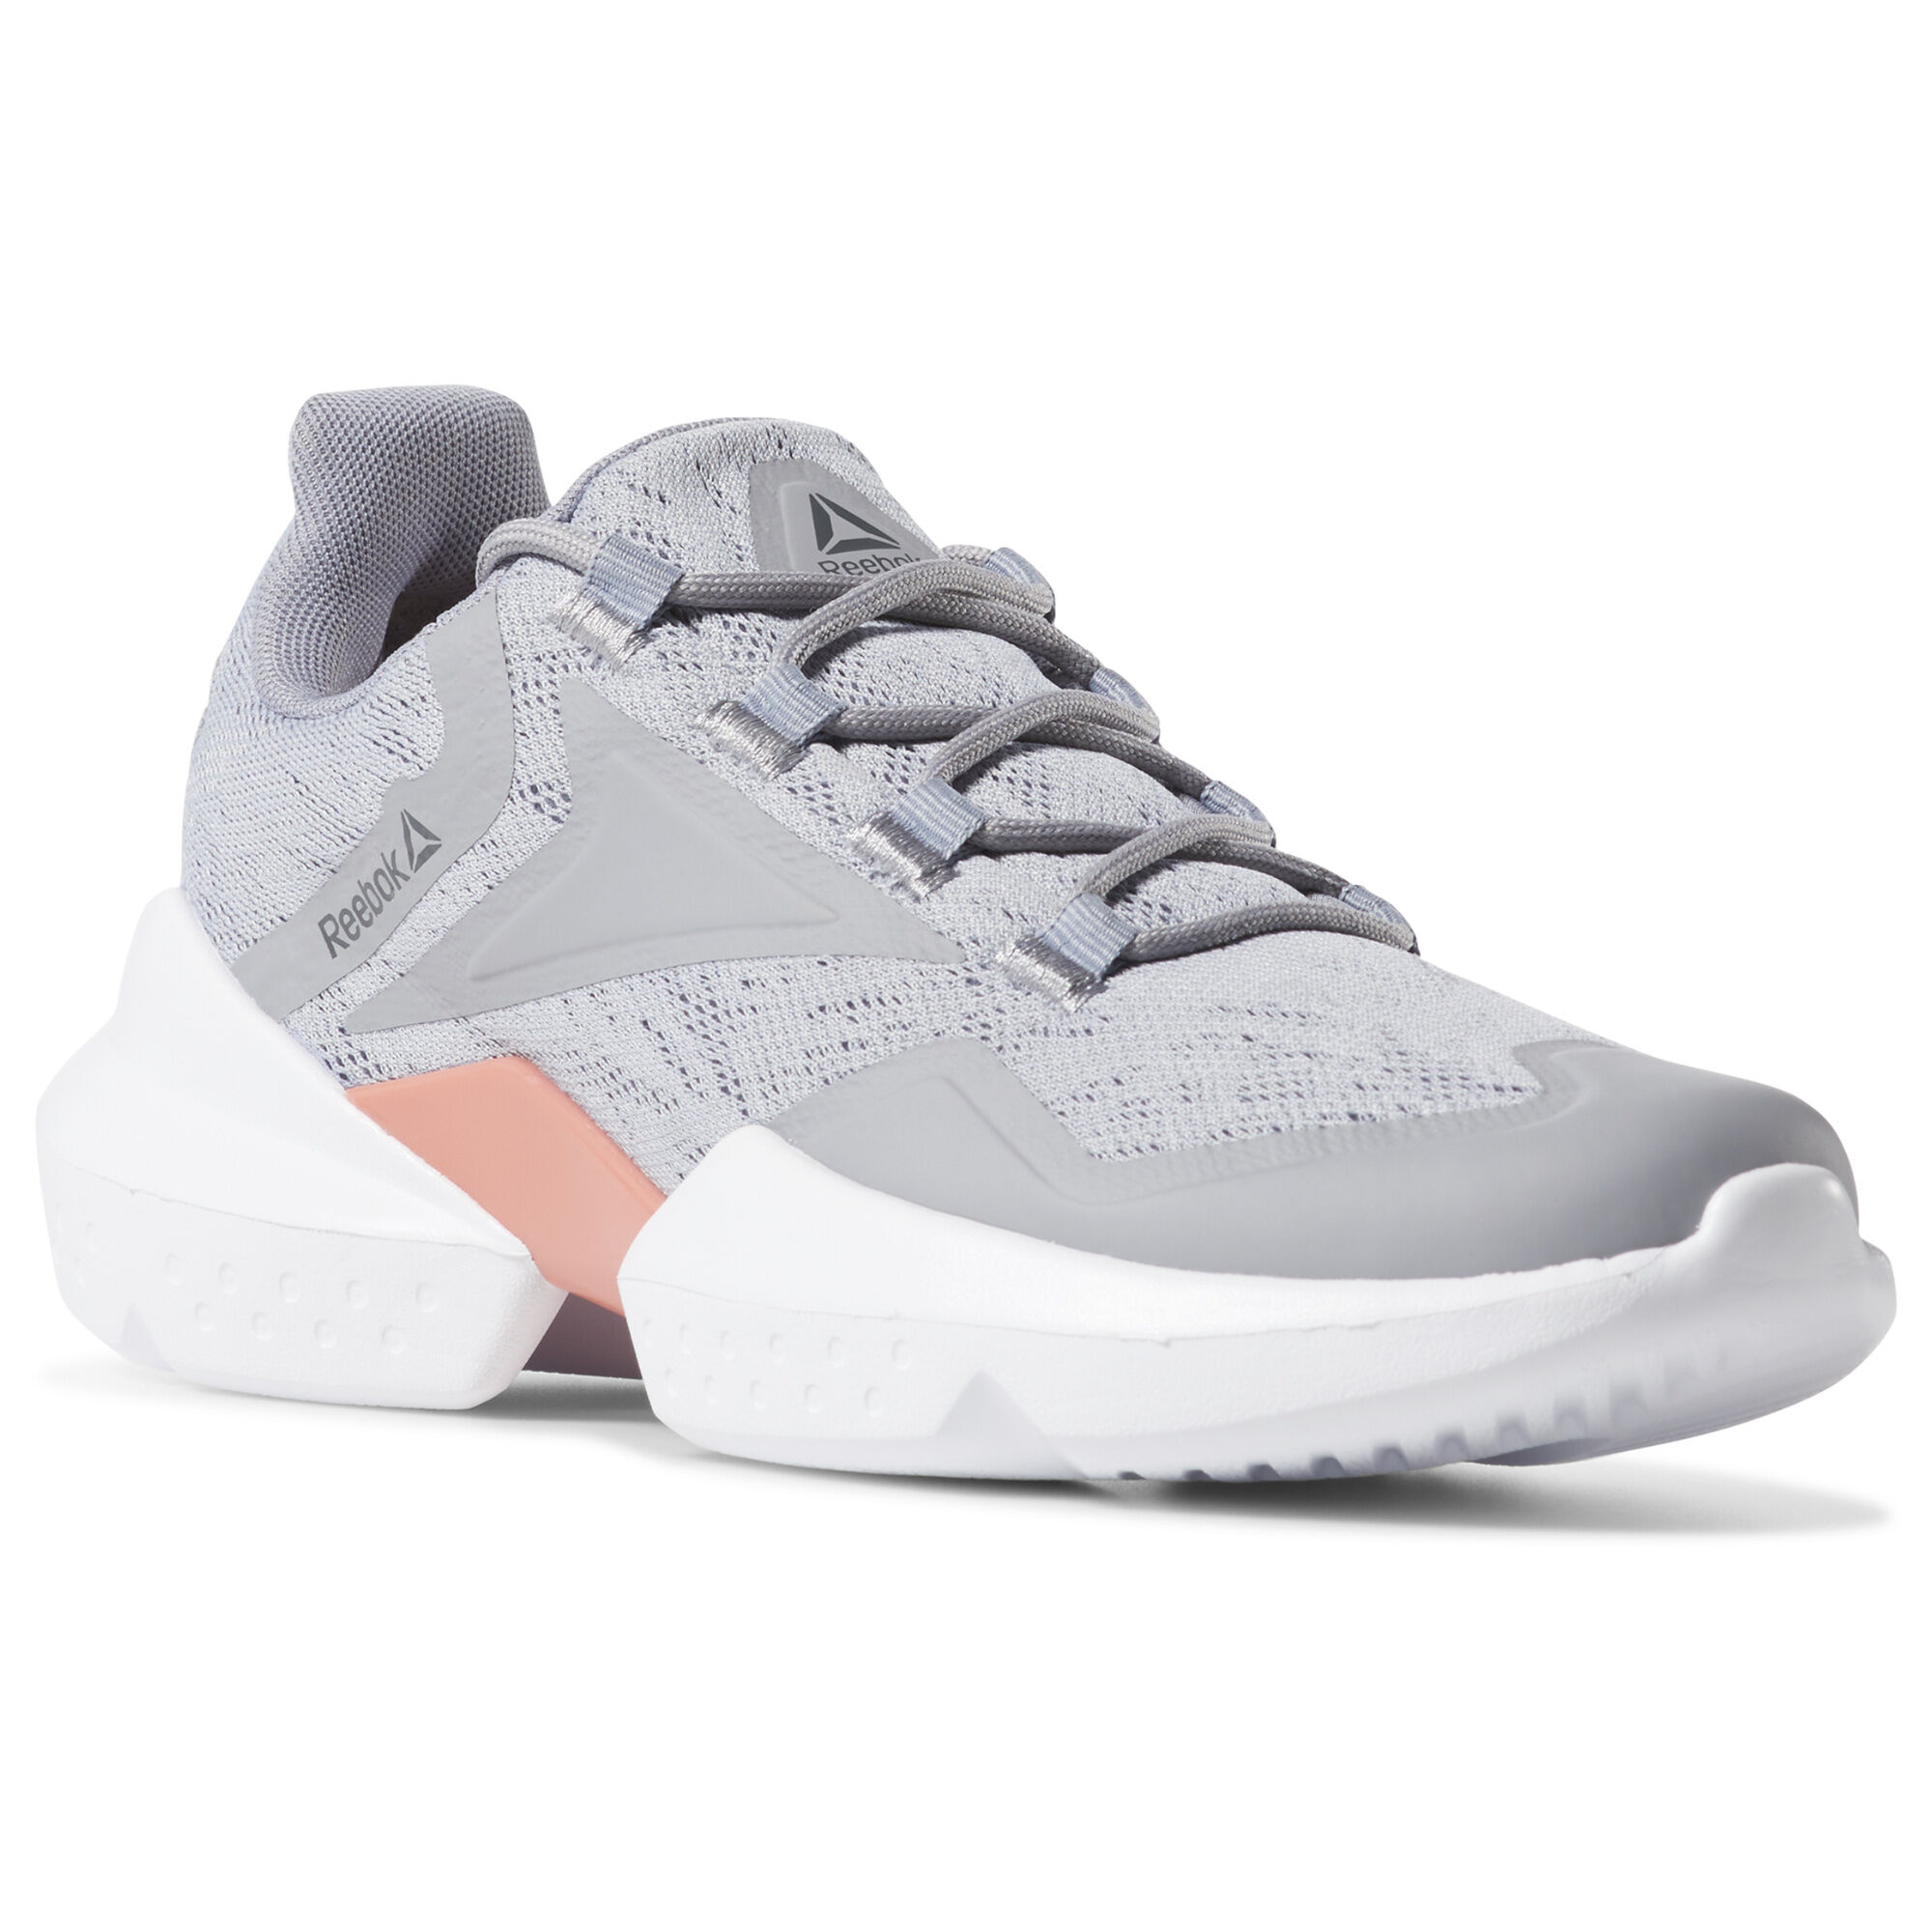 Reebok Shoes Women's Split Fuel Shoes in Cool Shadow/Pink/Grey Size 6 - Lifestyle,Running Shoes